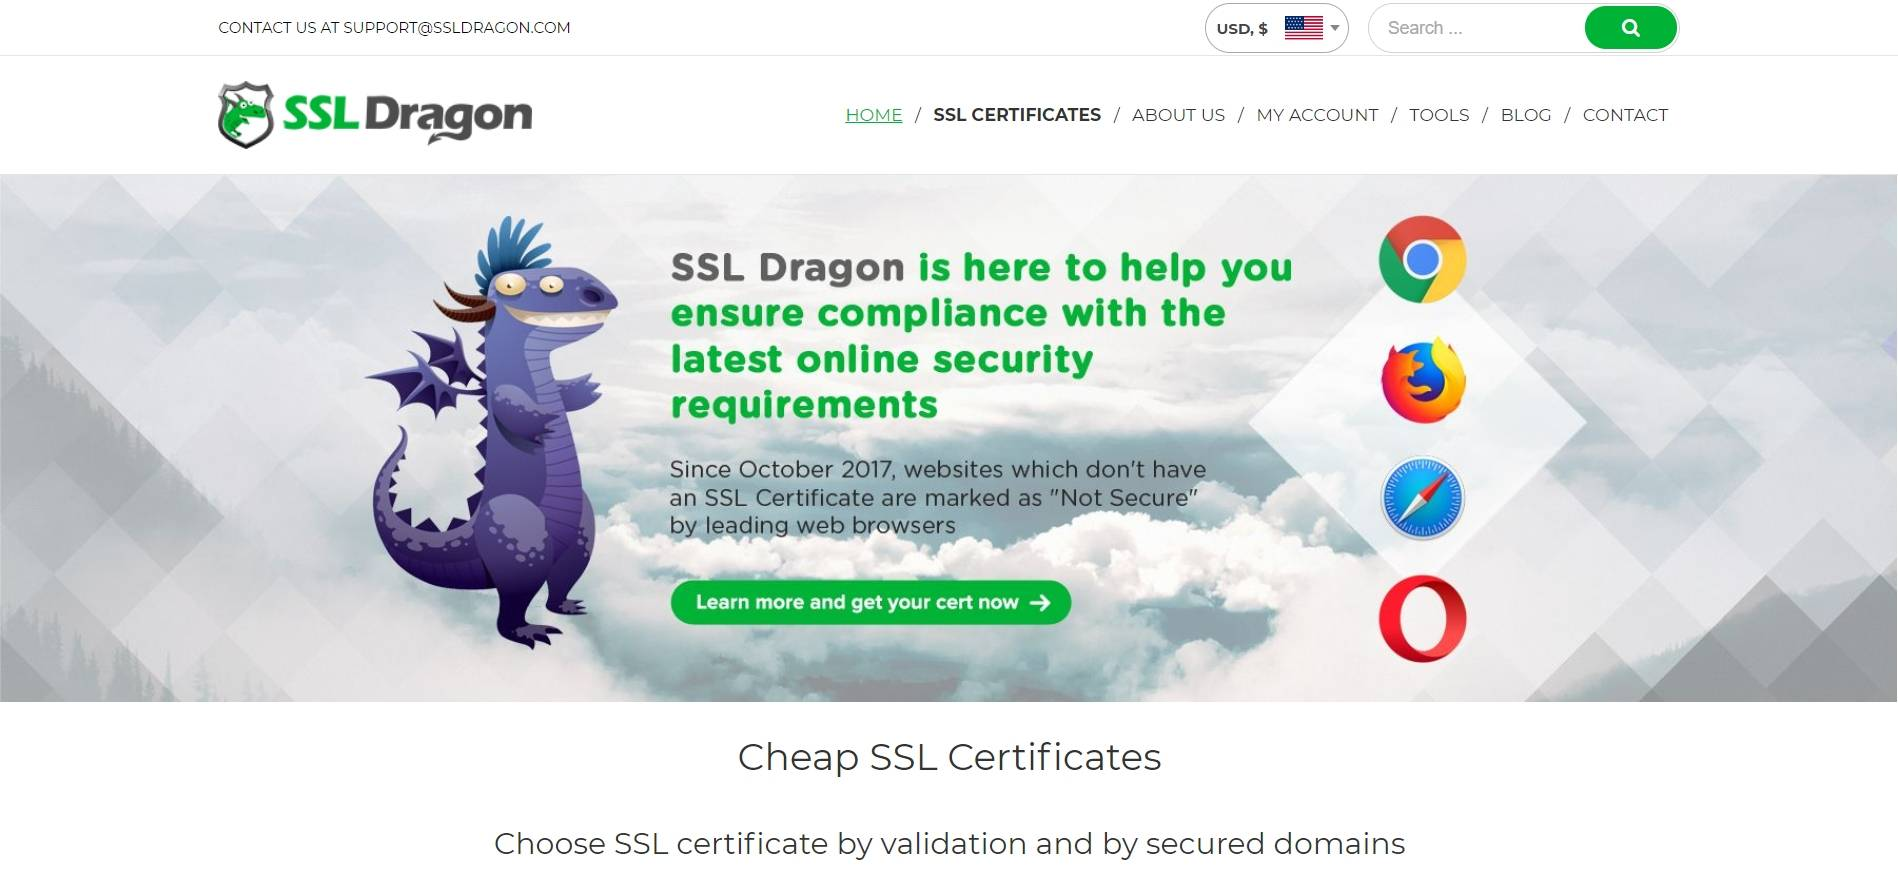 SSL Dragon